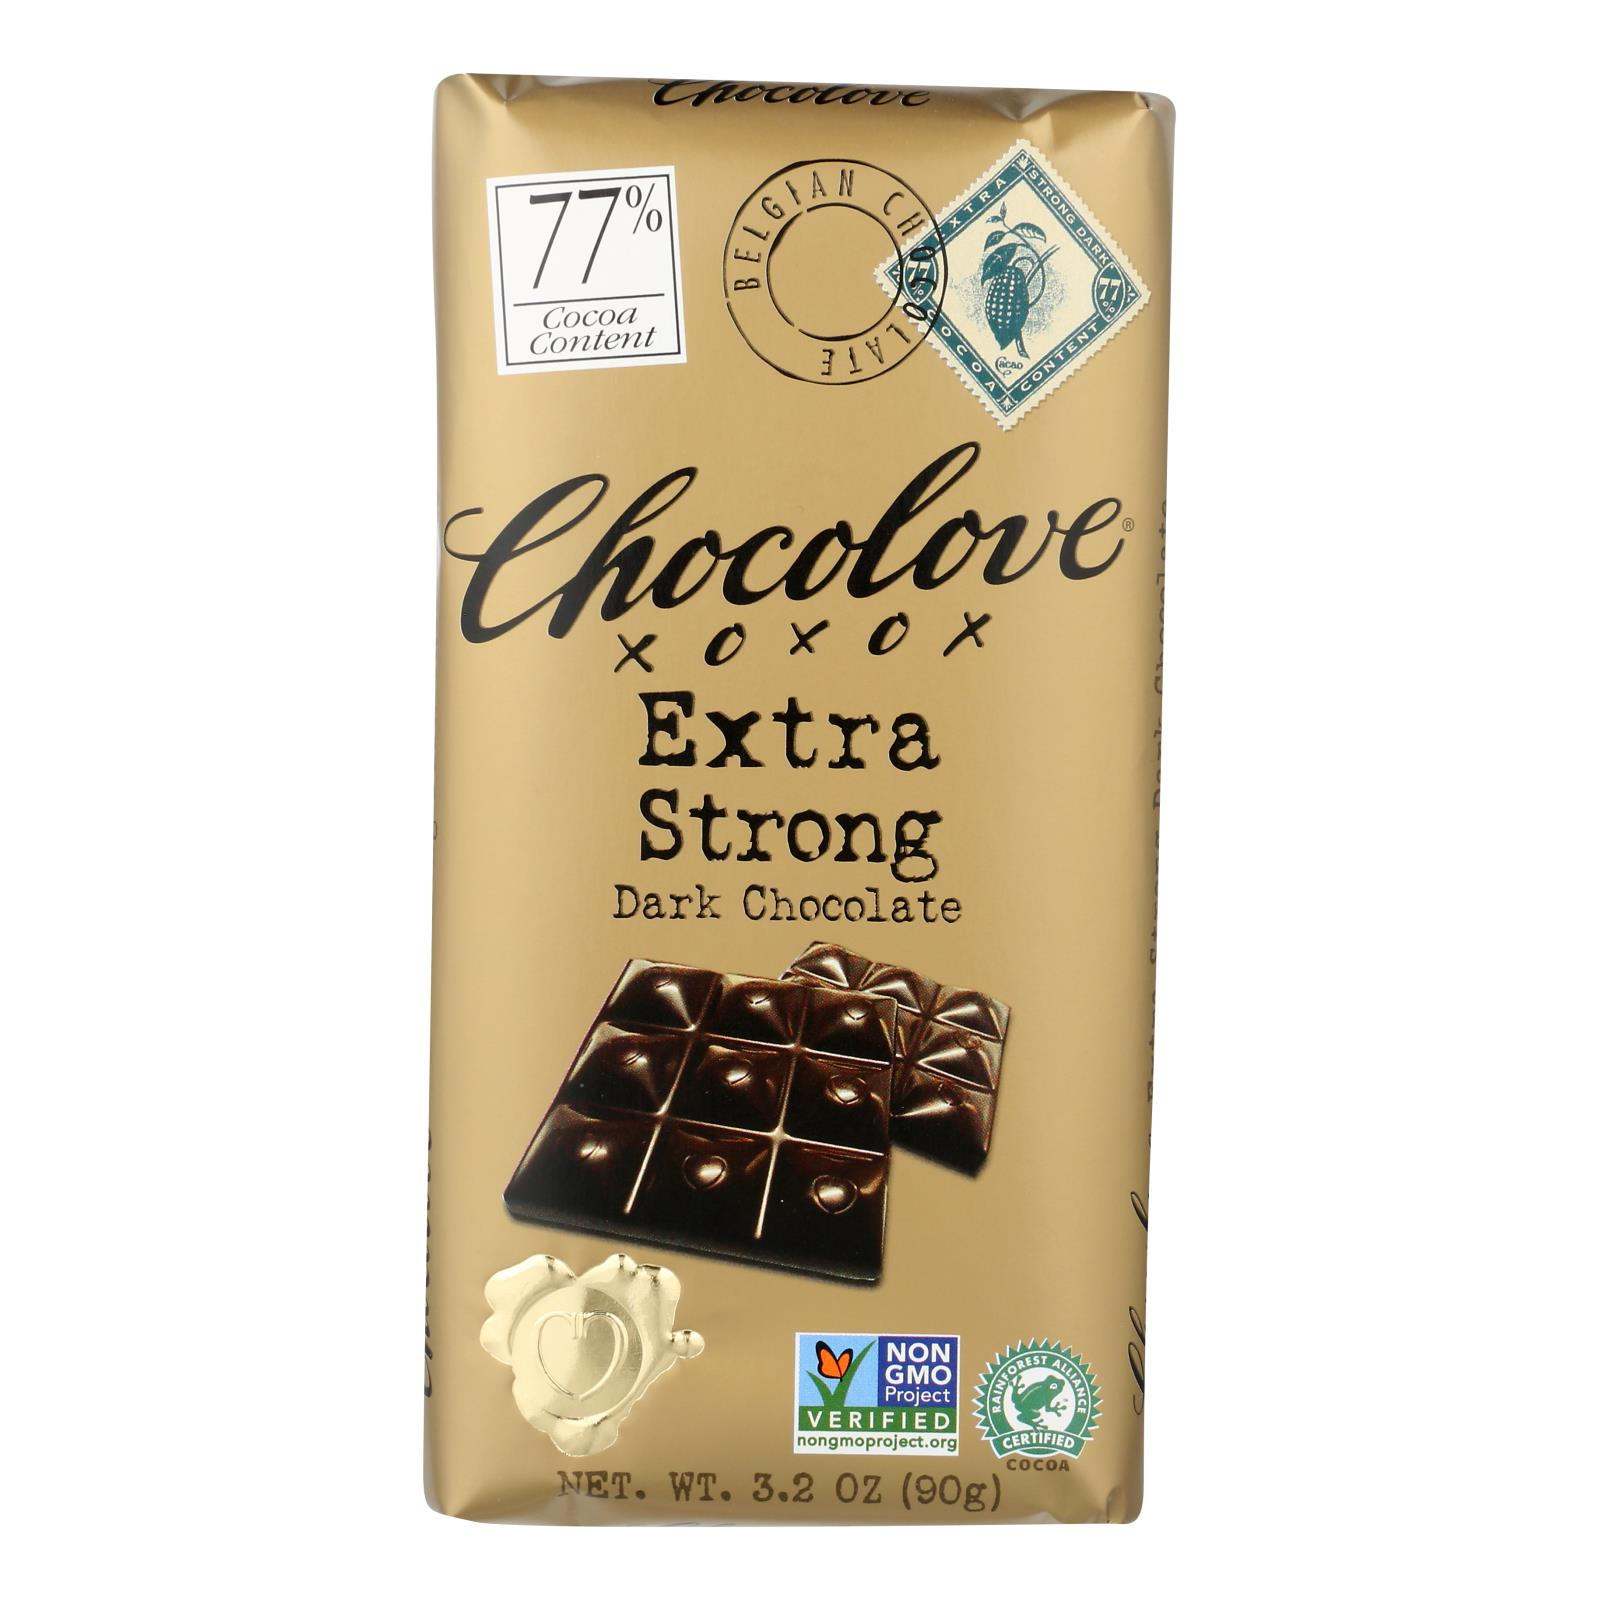 Chocolove Xoxox - Premium Chocolate Bar - Dark Chocolate - Extra Strong - 3.2 oz Bars - Case of 12